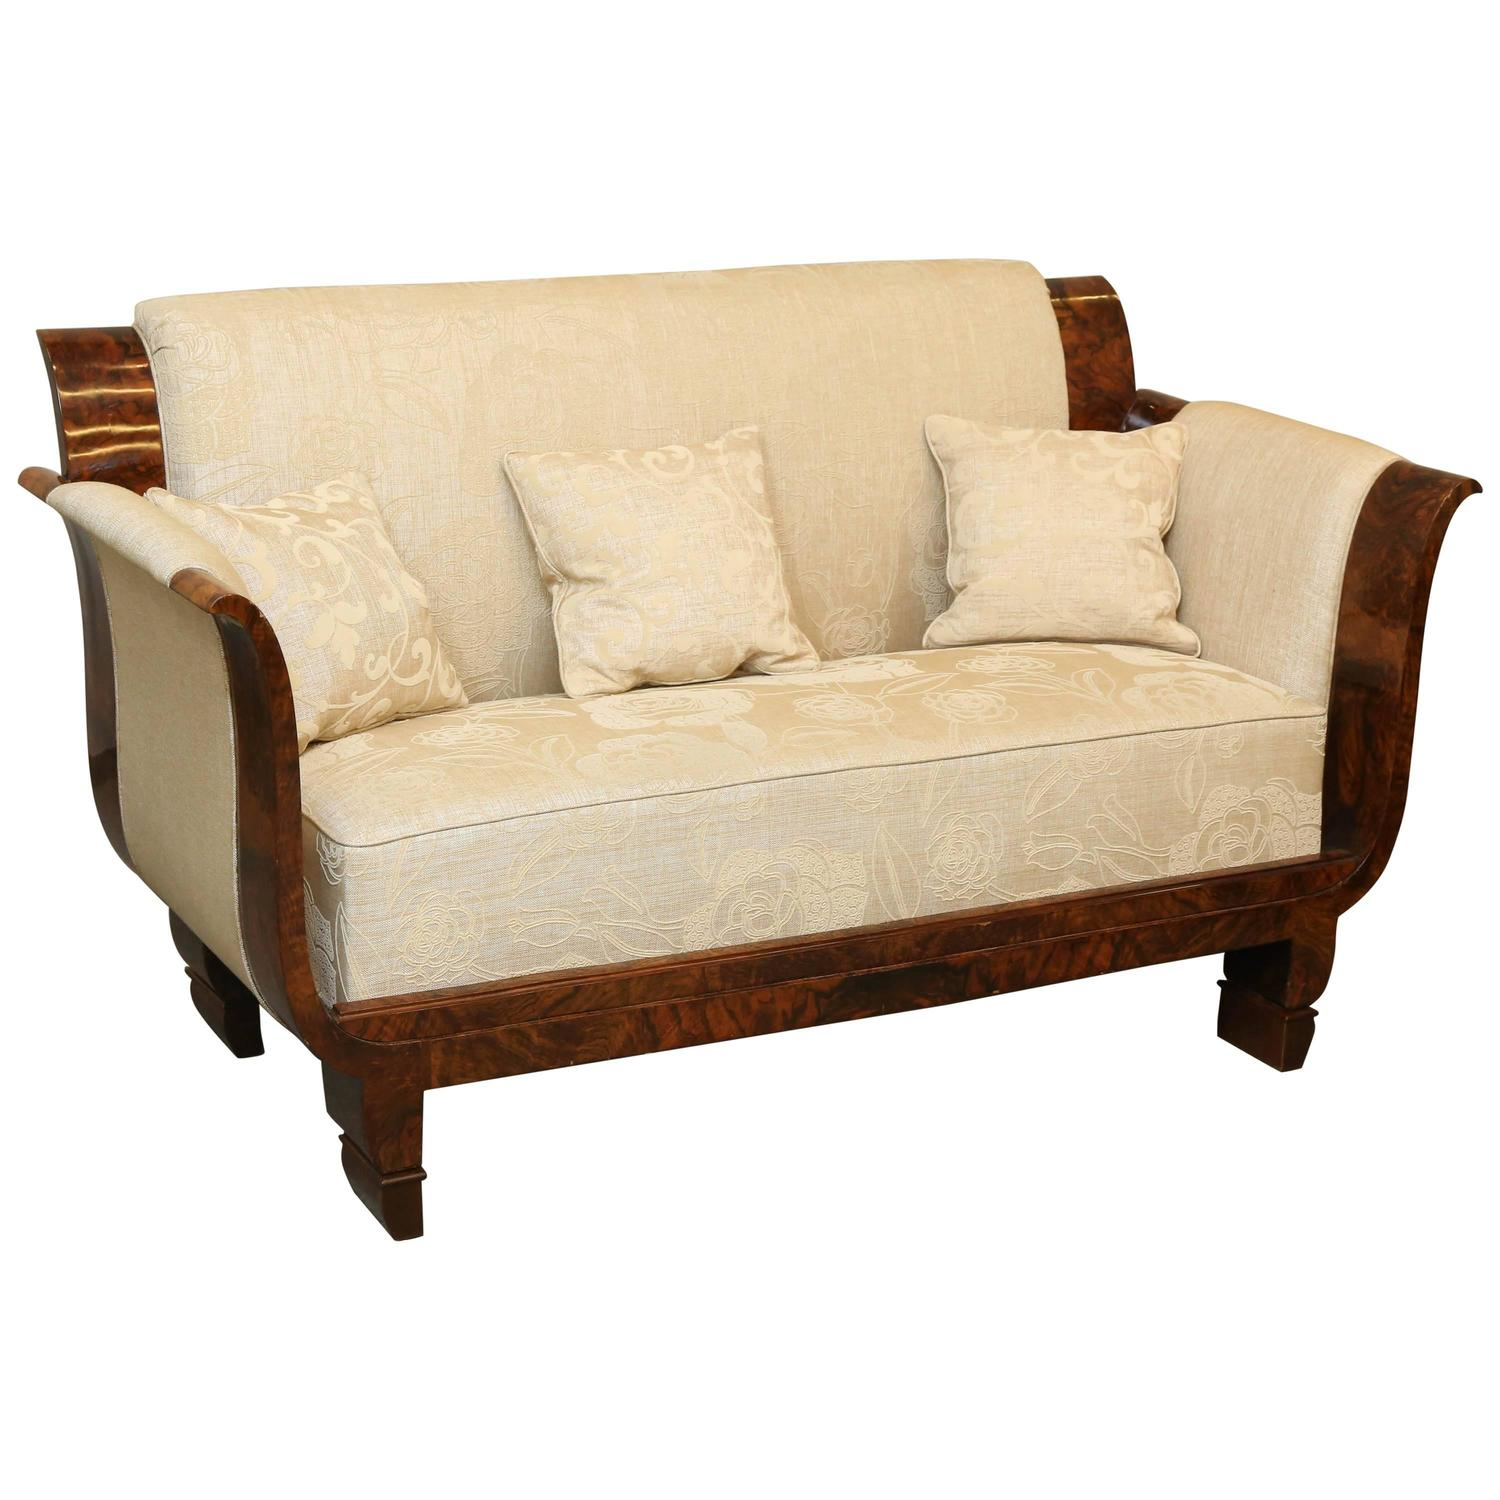 french art deco walnut parlor loveseat at 1stdibs